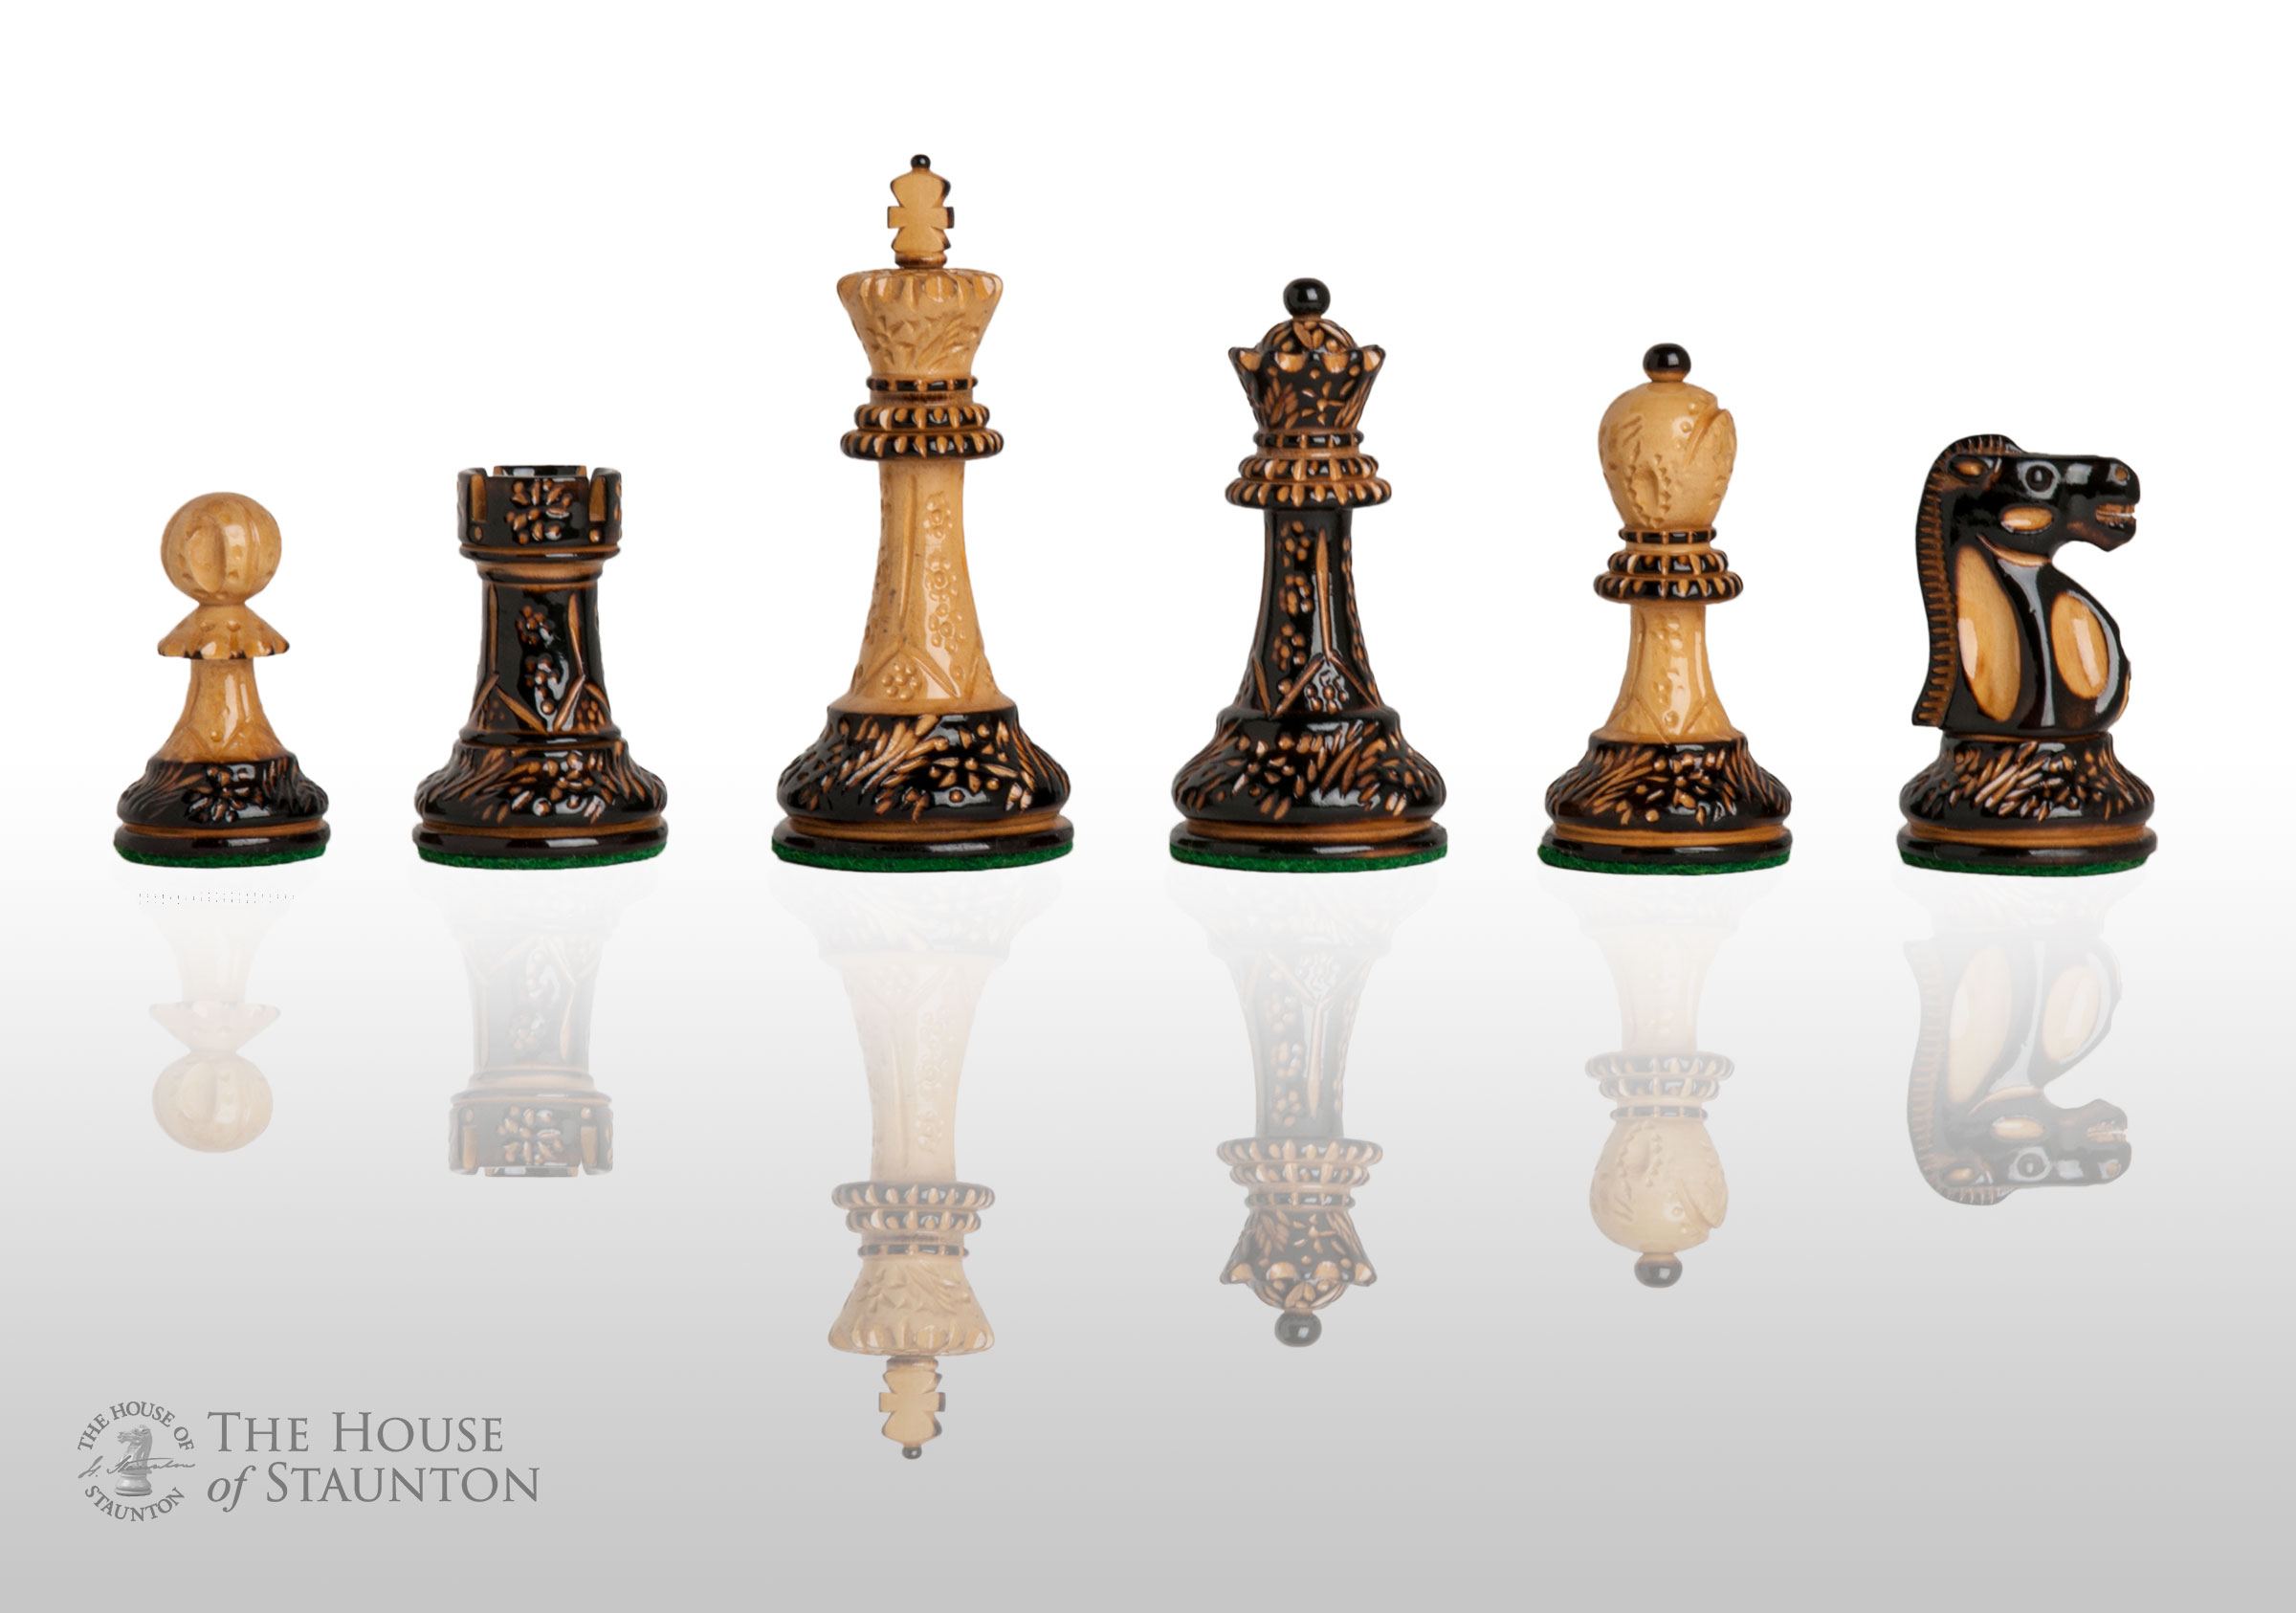 The Burnt Reykjavik II Chess Set - Pieces Only - 3.75  King